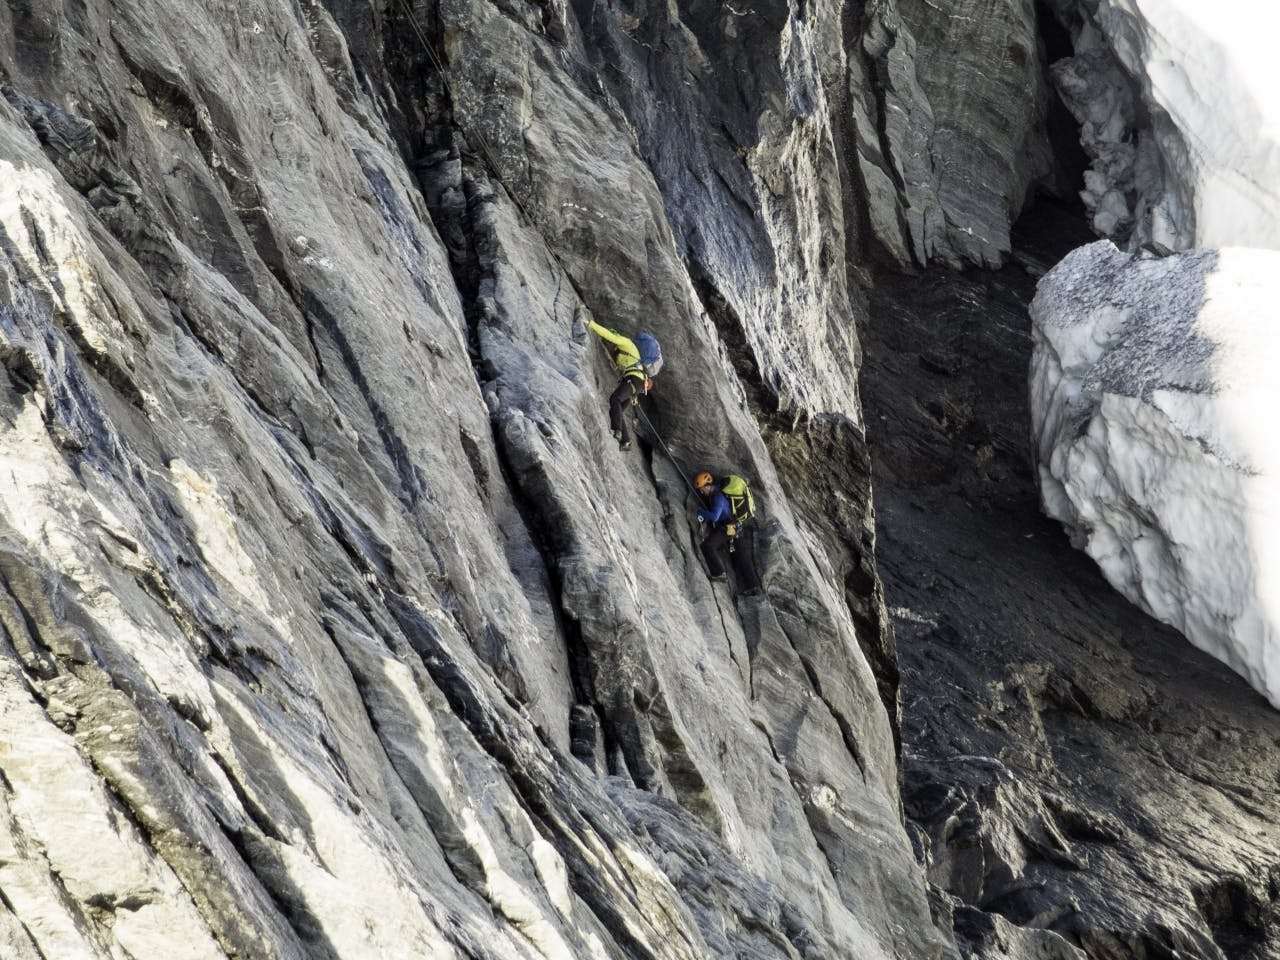 Ben Dare and Danny Murphy on the second pitch of the climb. Photo: Steve Skelton